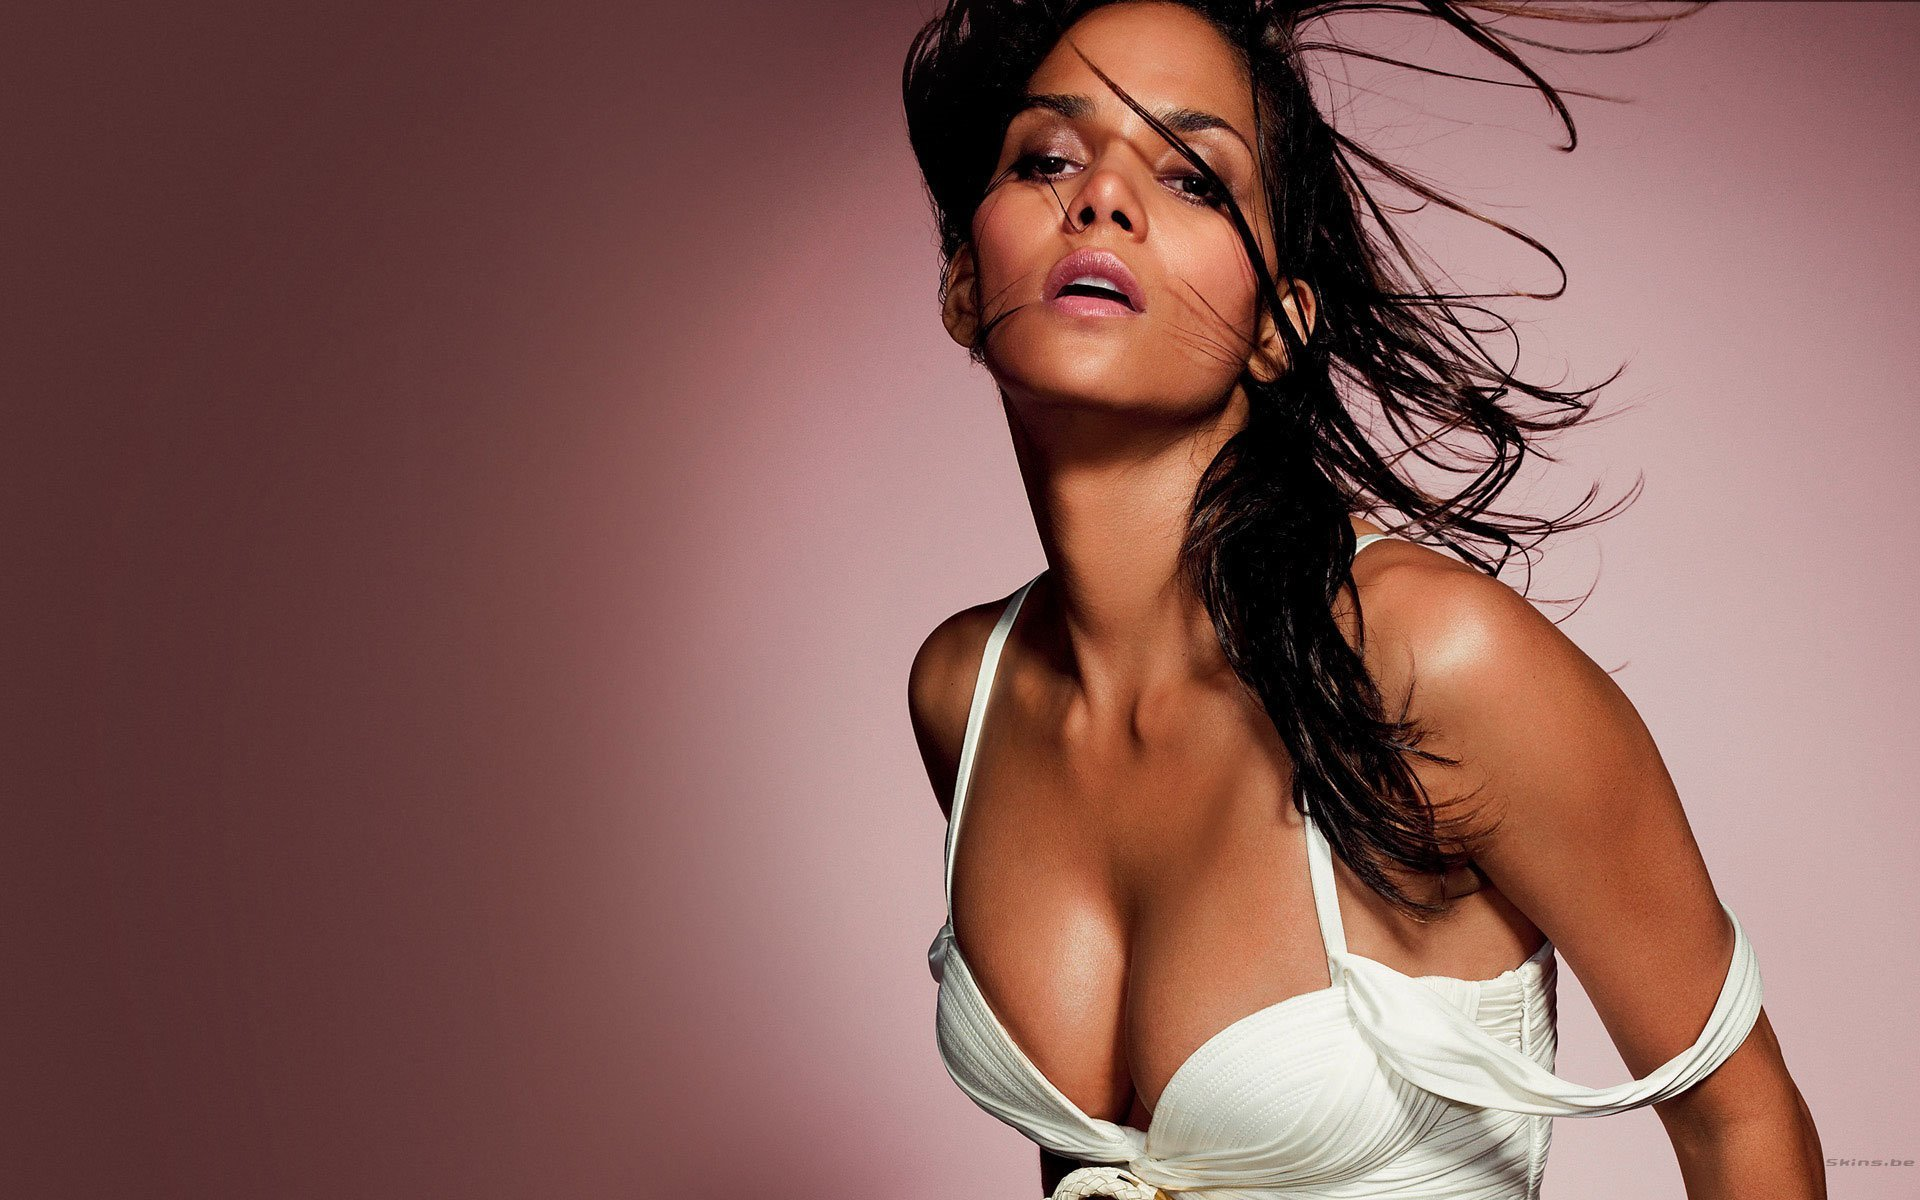 1920x1200 - Halle Berry Wallpapers 6